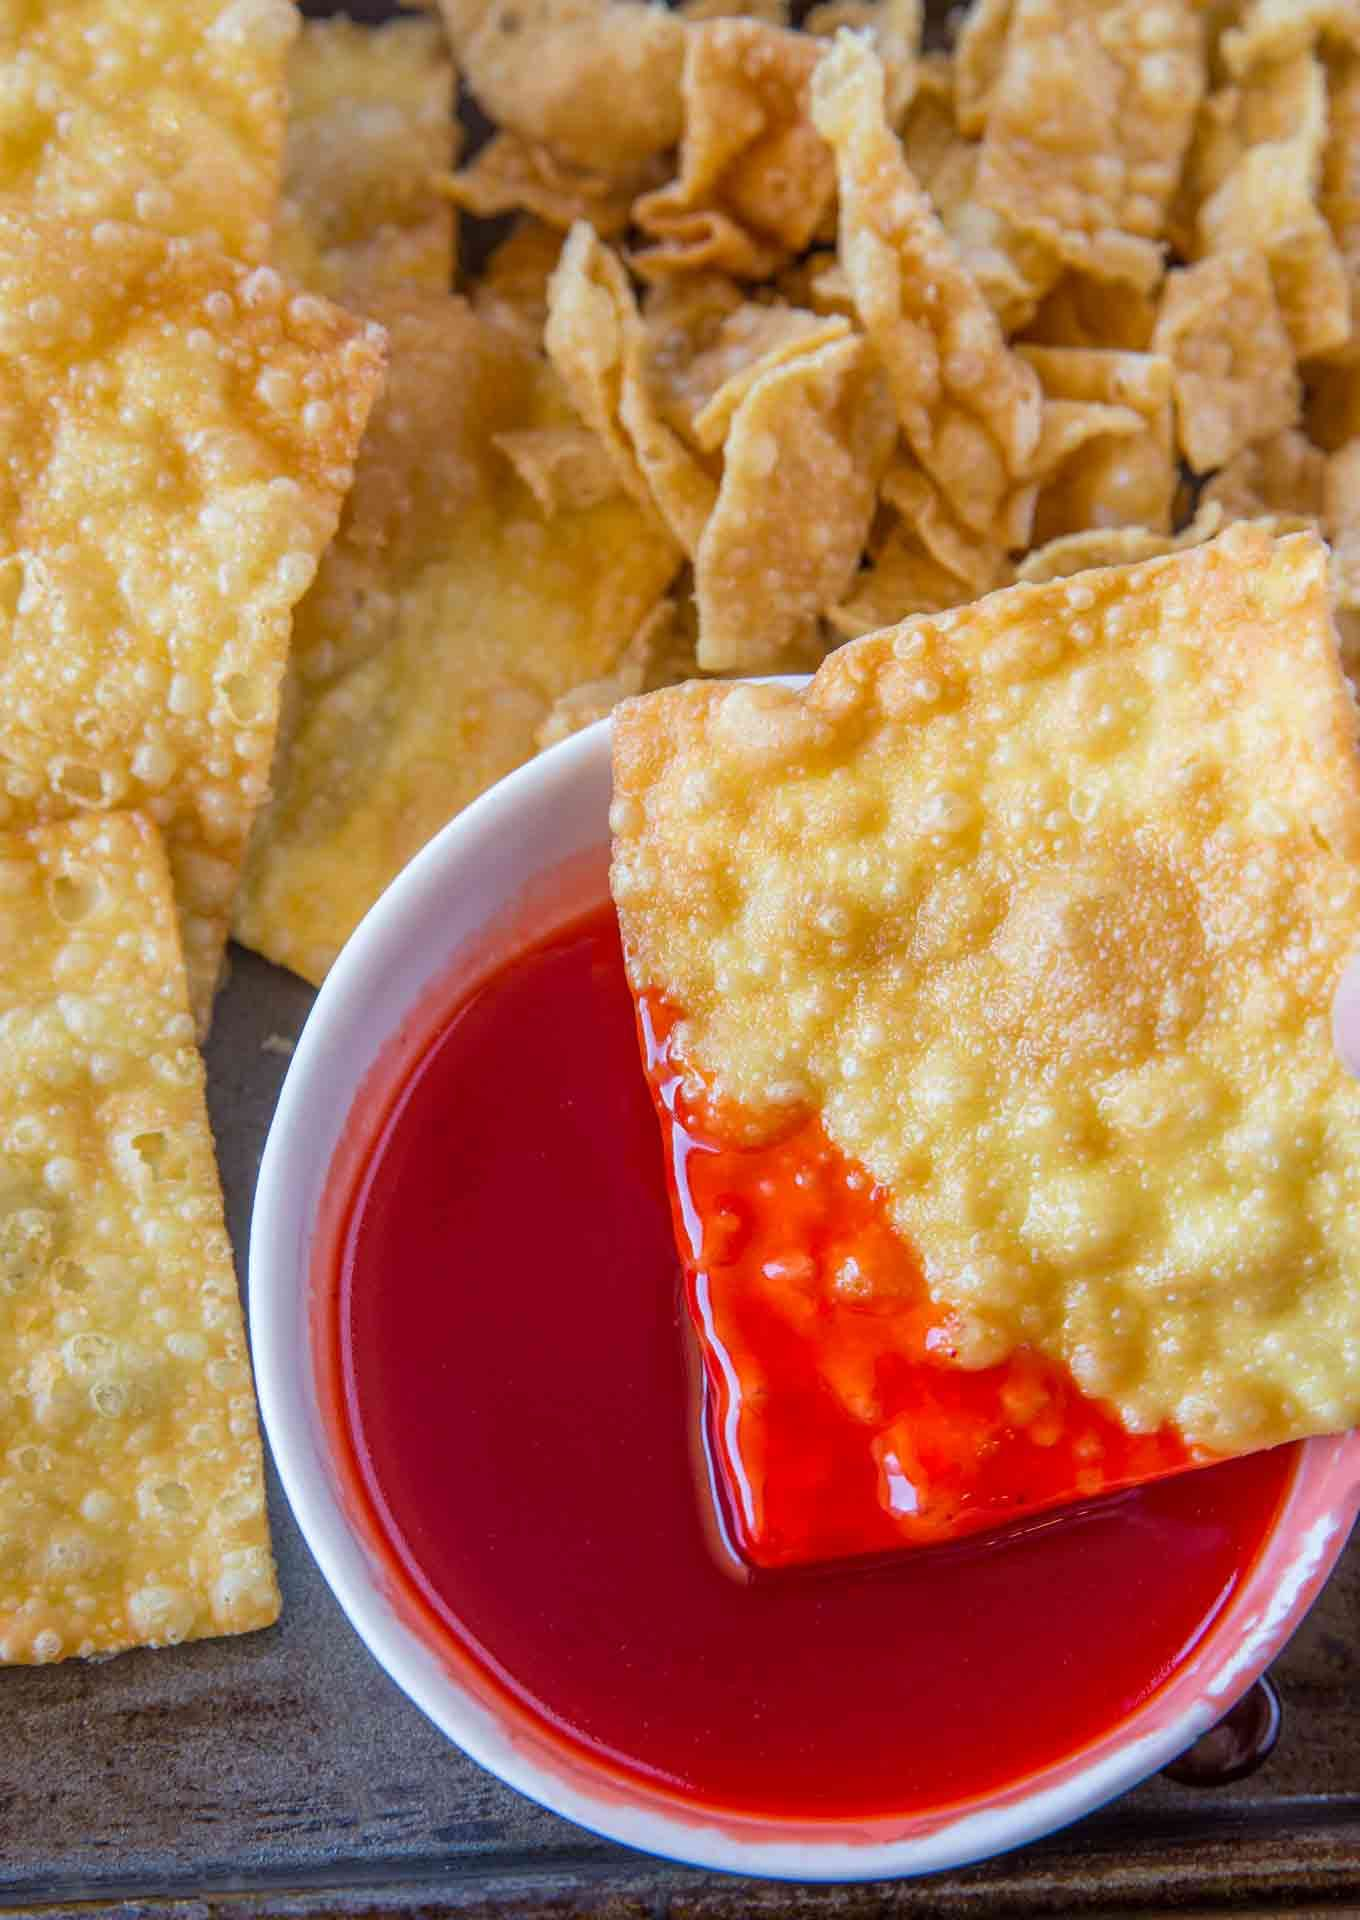 Sweet And Sour Sauce Is The Clic Tangy Dipping Of Chinese Takeout Restaurants That Has Just Six Ings In Less Than 10 Minutes